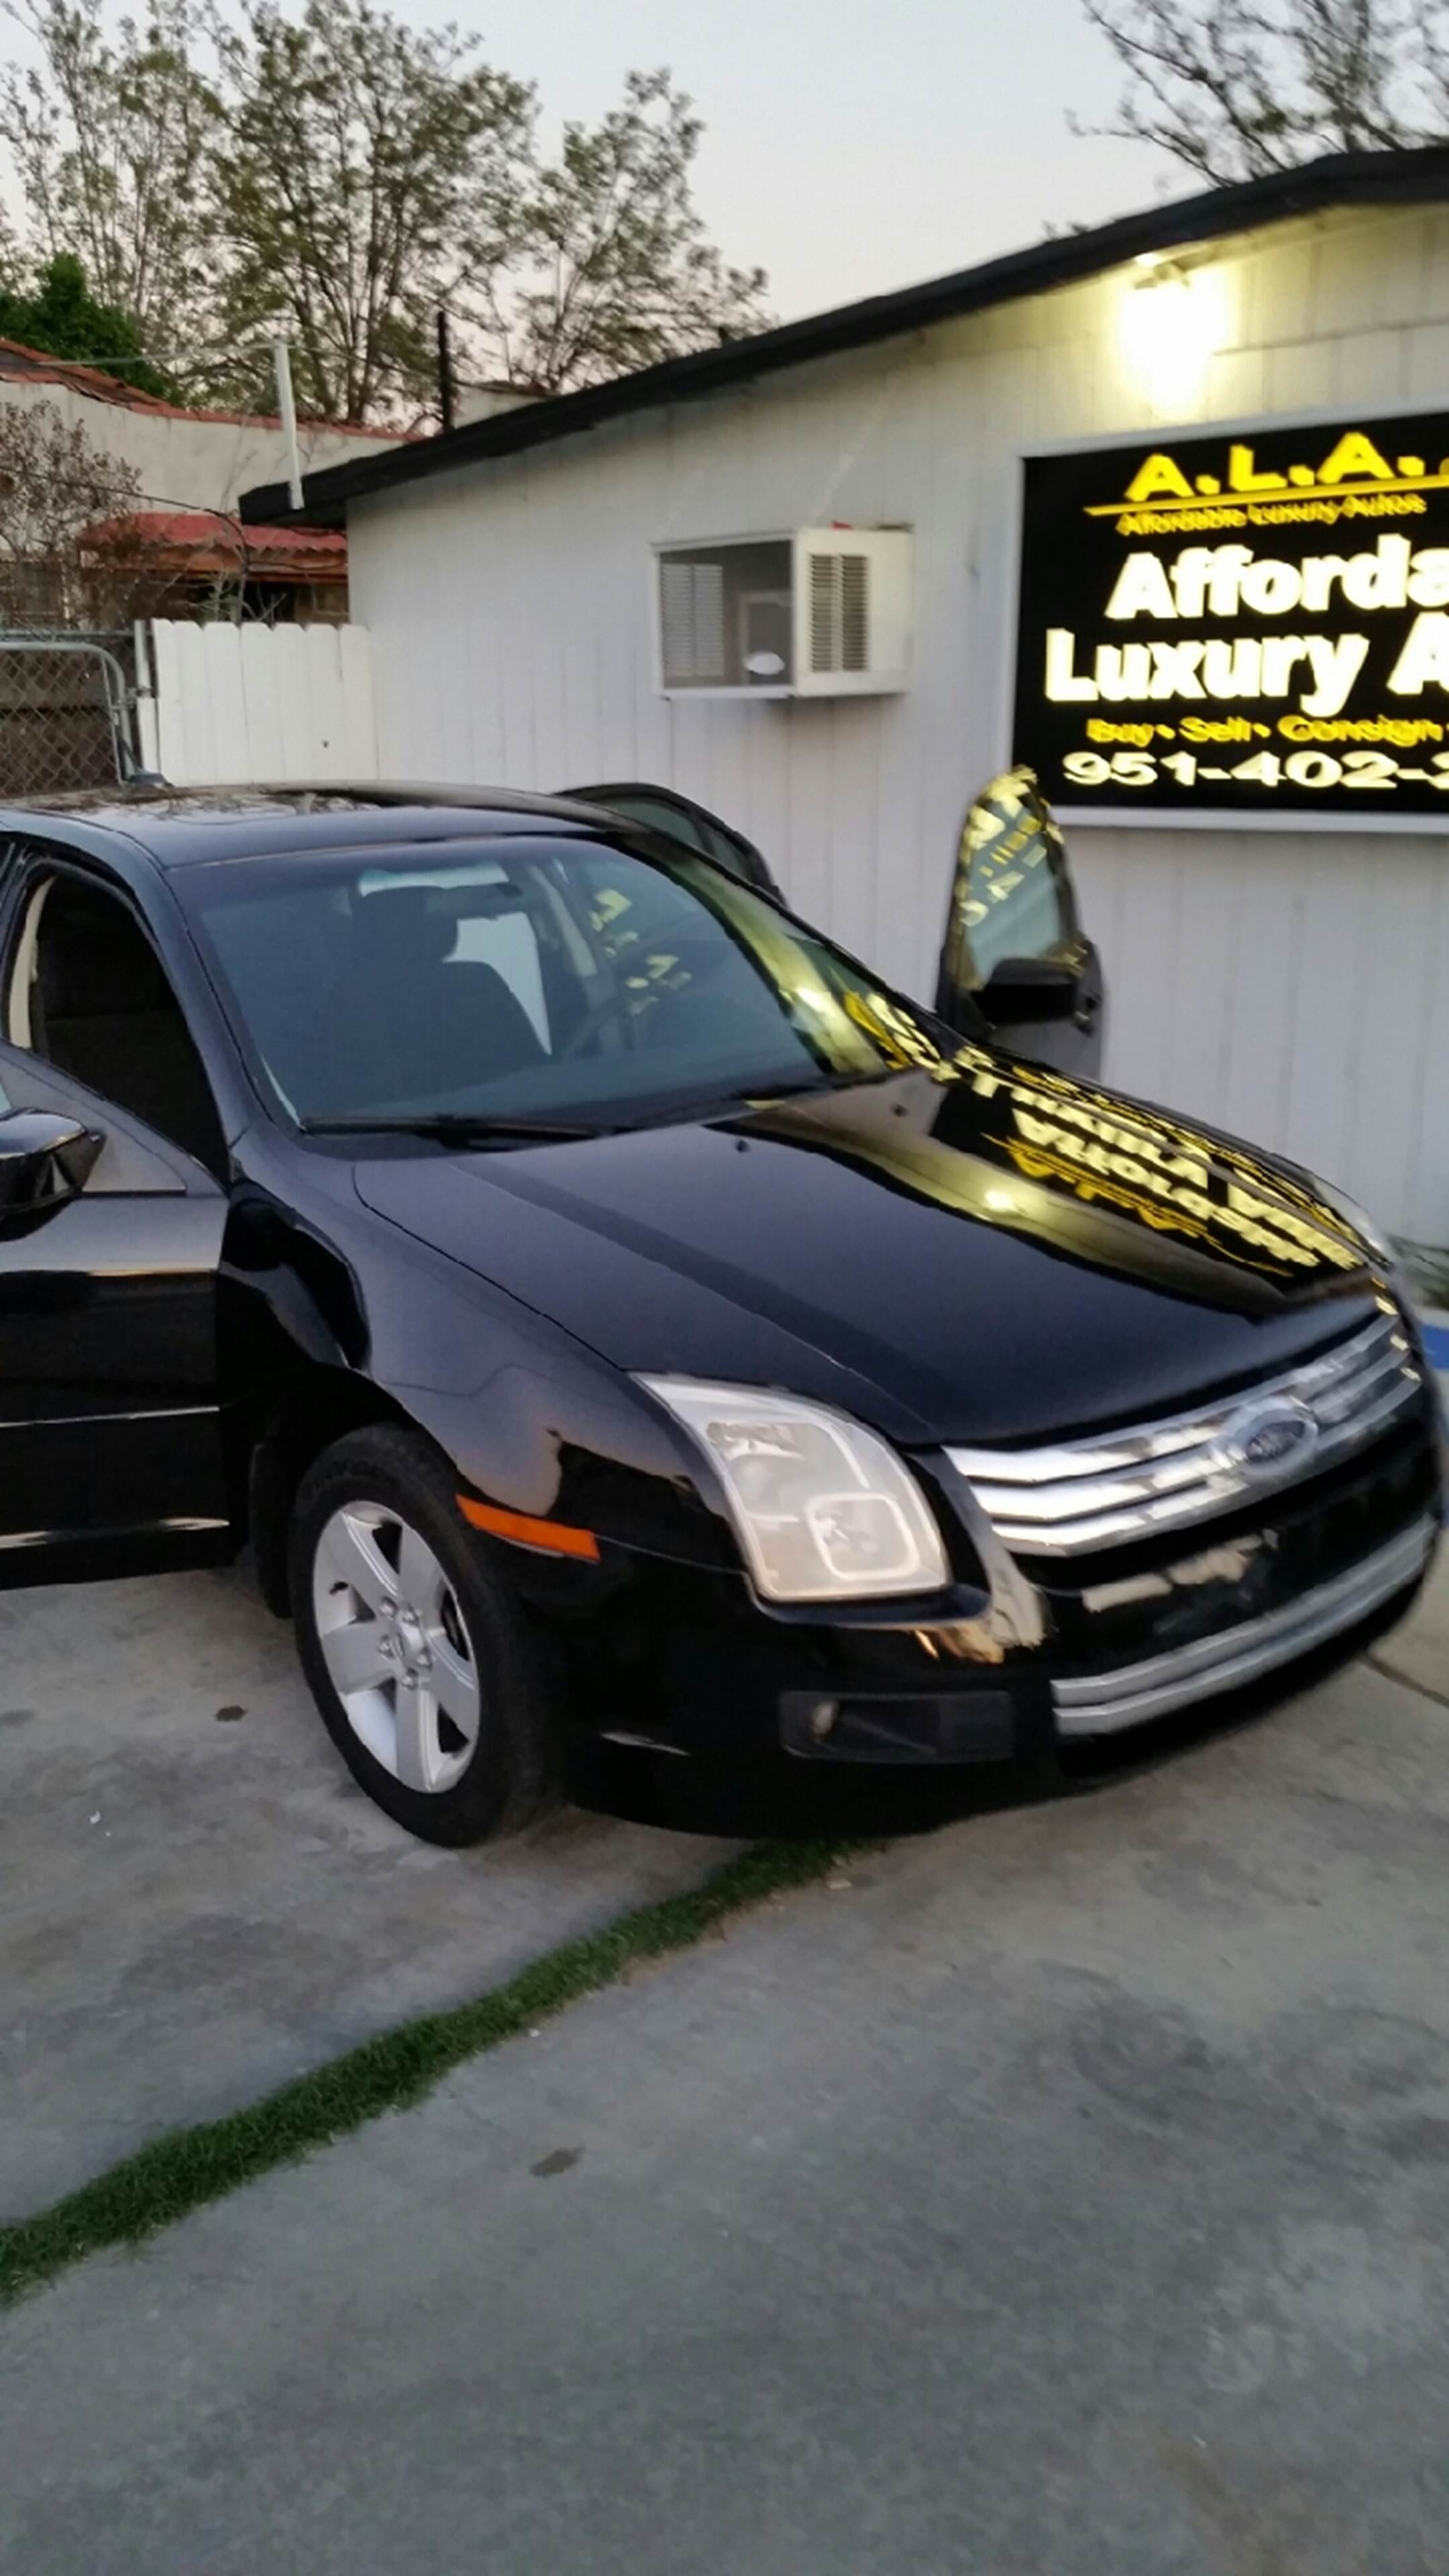 2008 Ford Fusion for sale at Affordable Luxury Autos LLC in San Jacinto CA